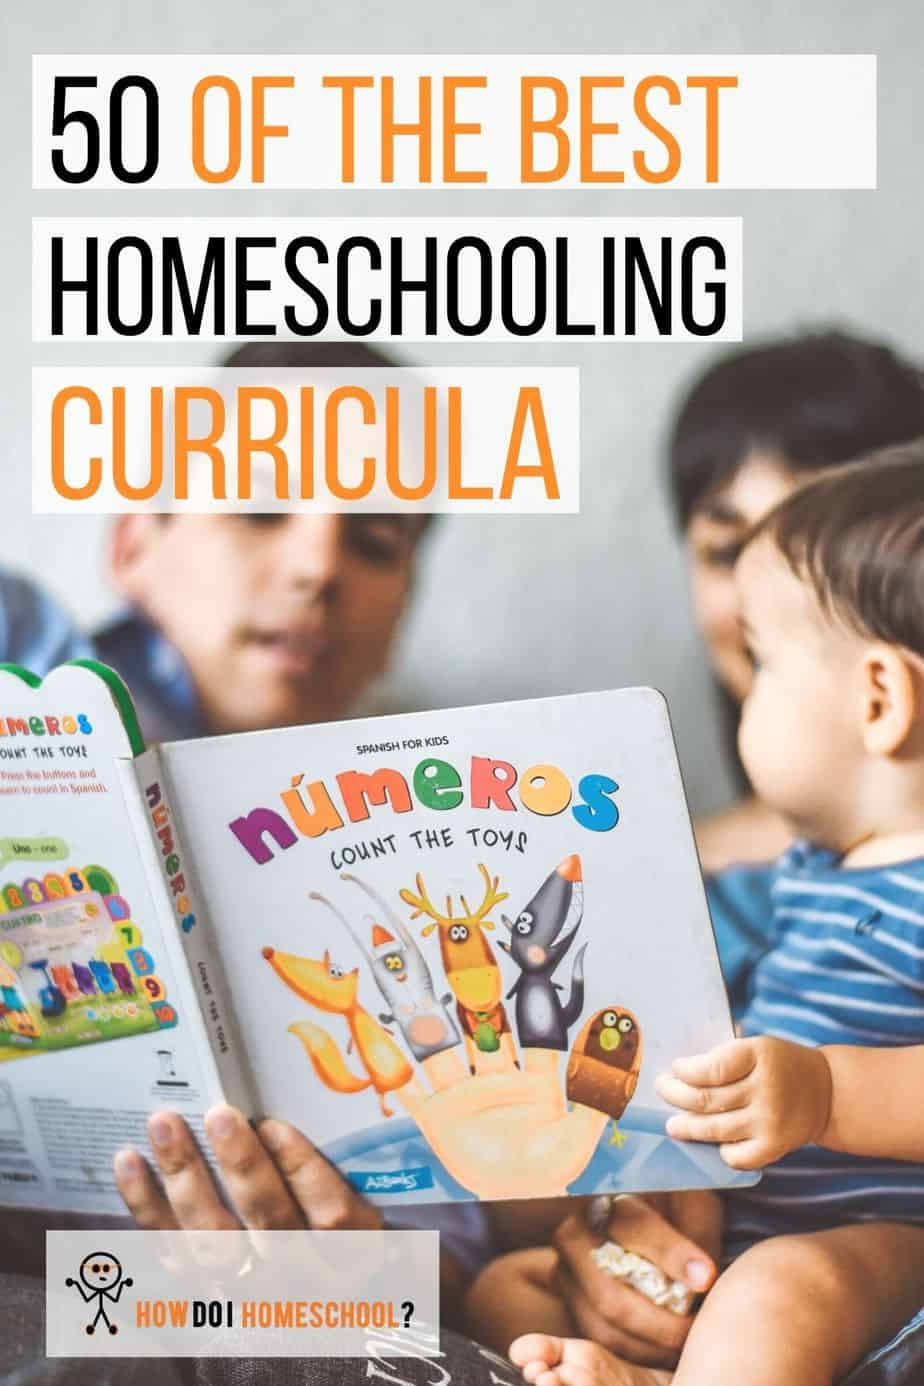 What's the best home education program available today? We look at 50 of the top homeschooling curriculum packages here and compare them side-by-side. #besthomeschoolingcurriculum